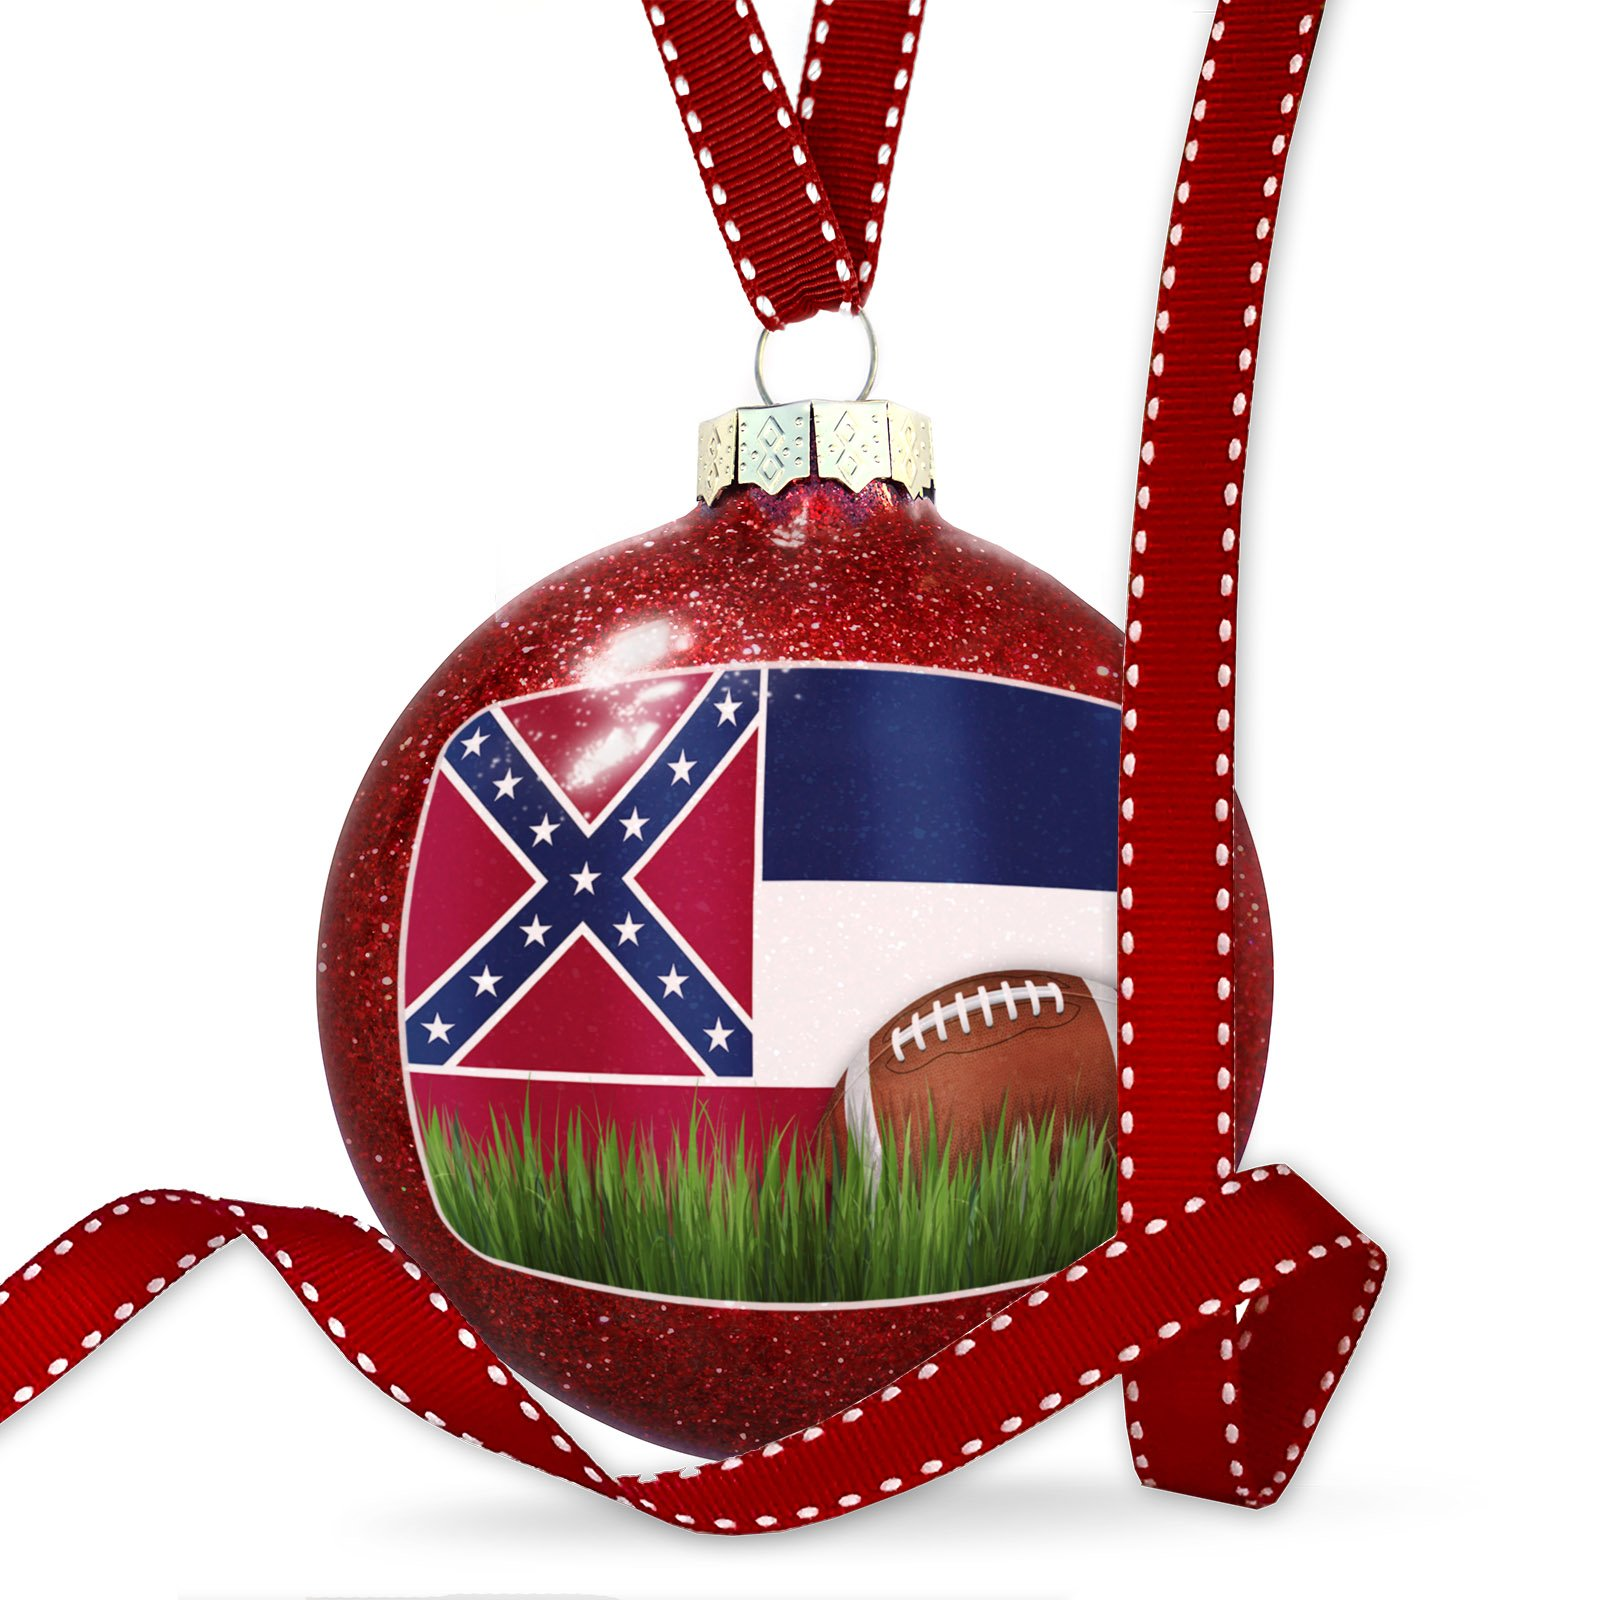 Christmas Decoration Football with Flag Mississippi region America (USA) Ornament